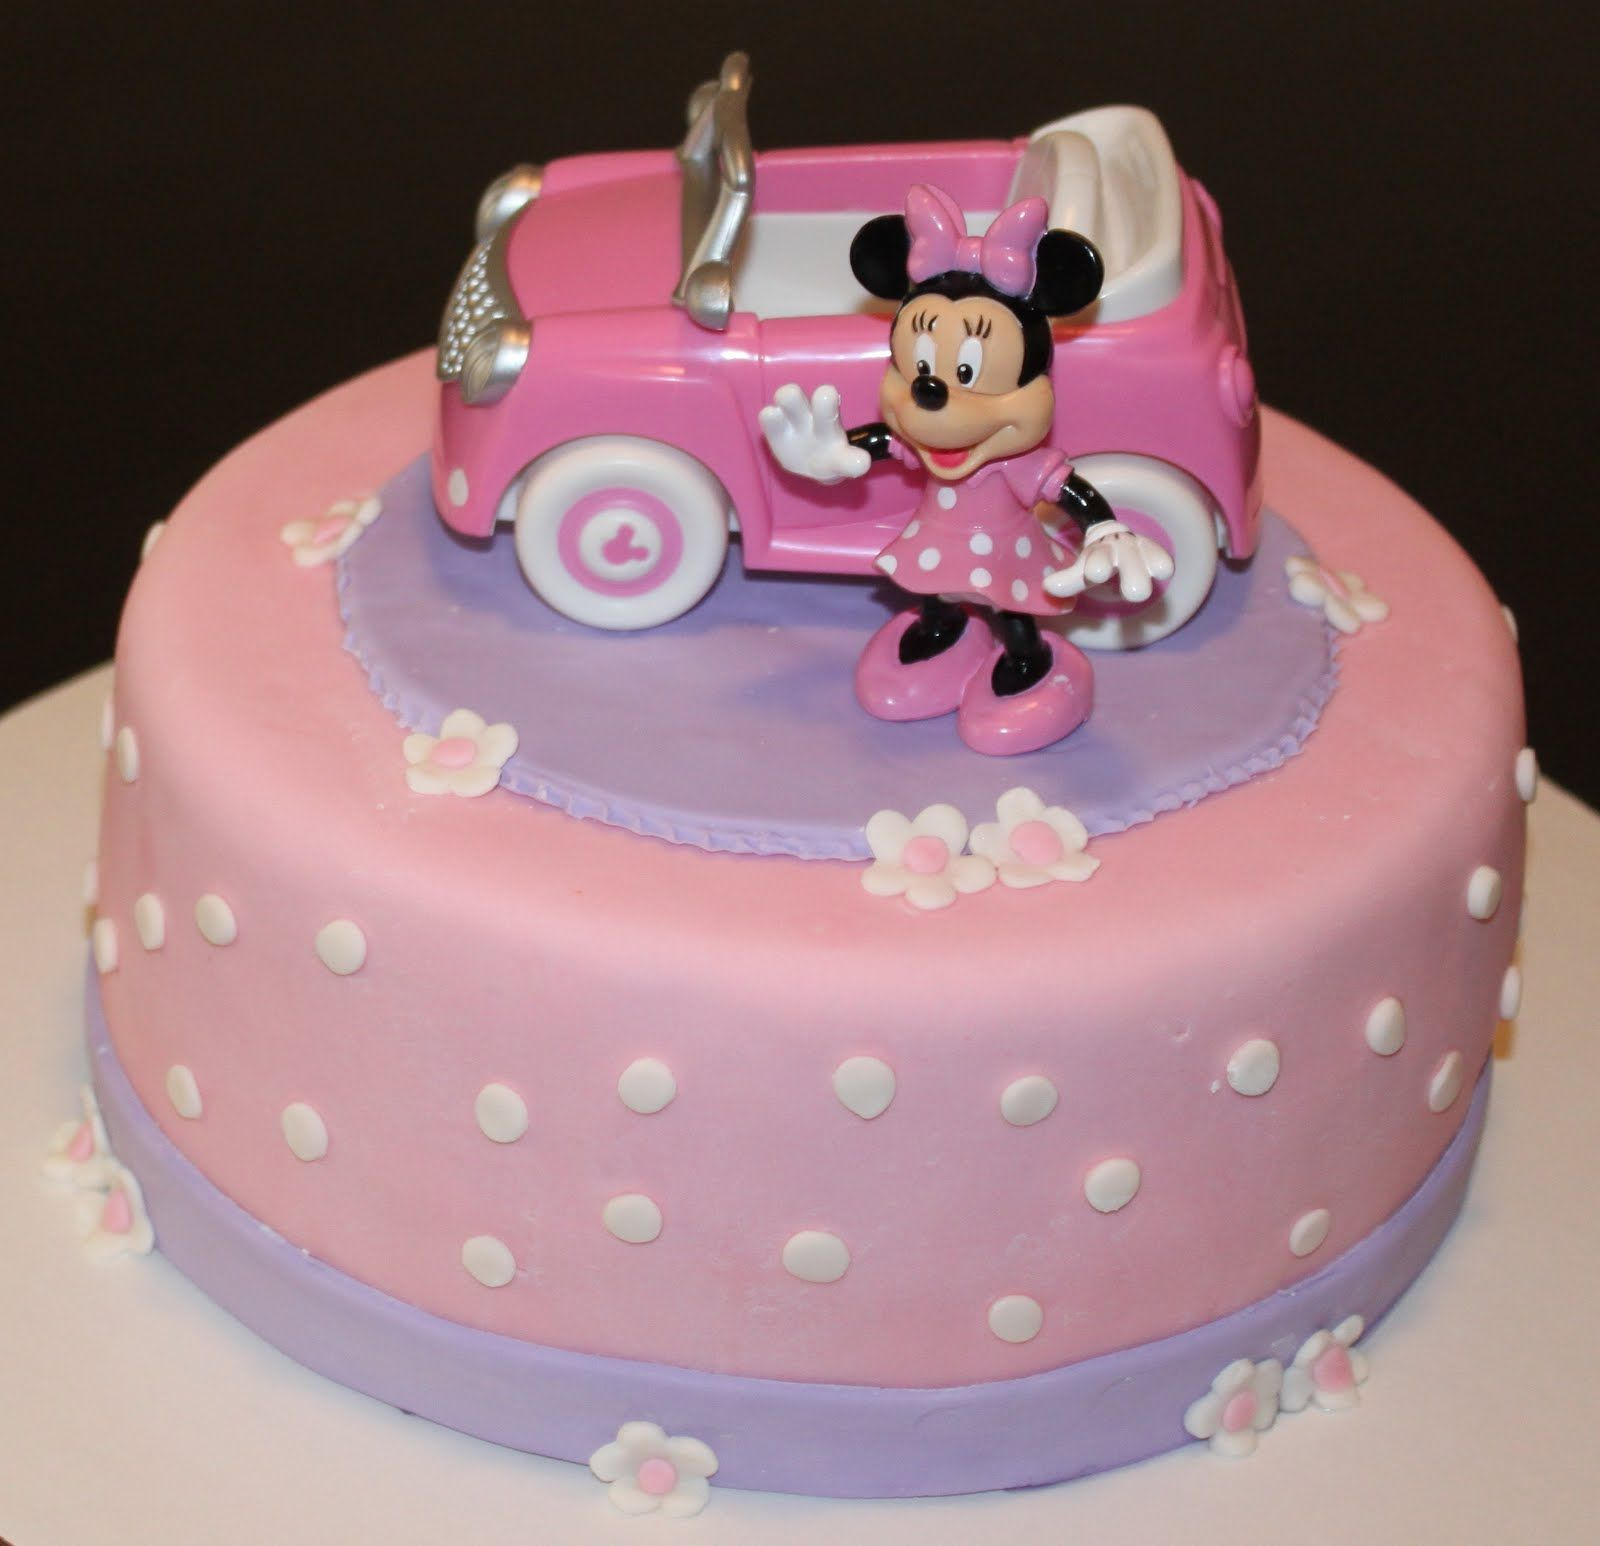 minnie mouse cake template free - minnie mouse cake template minnie mouse cakes